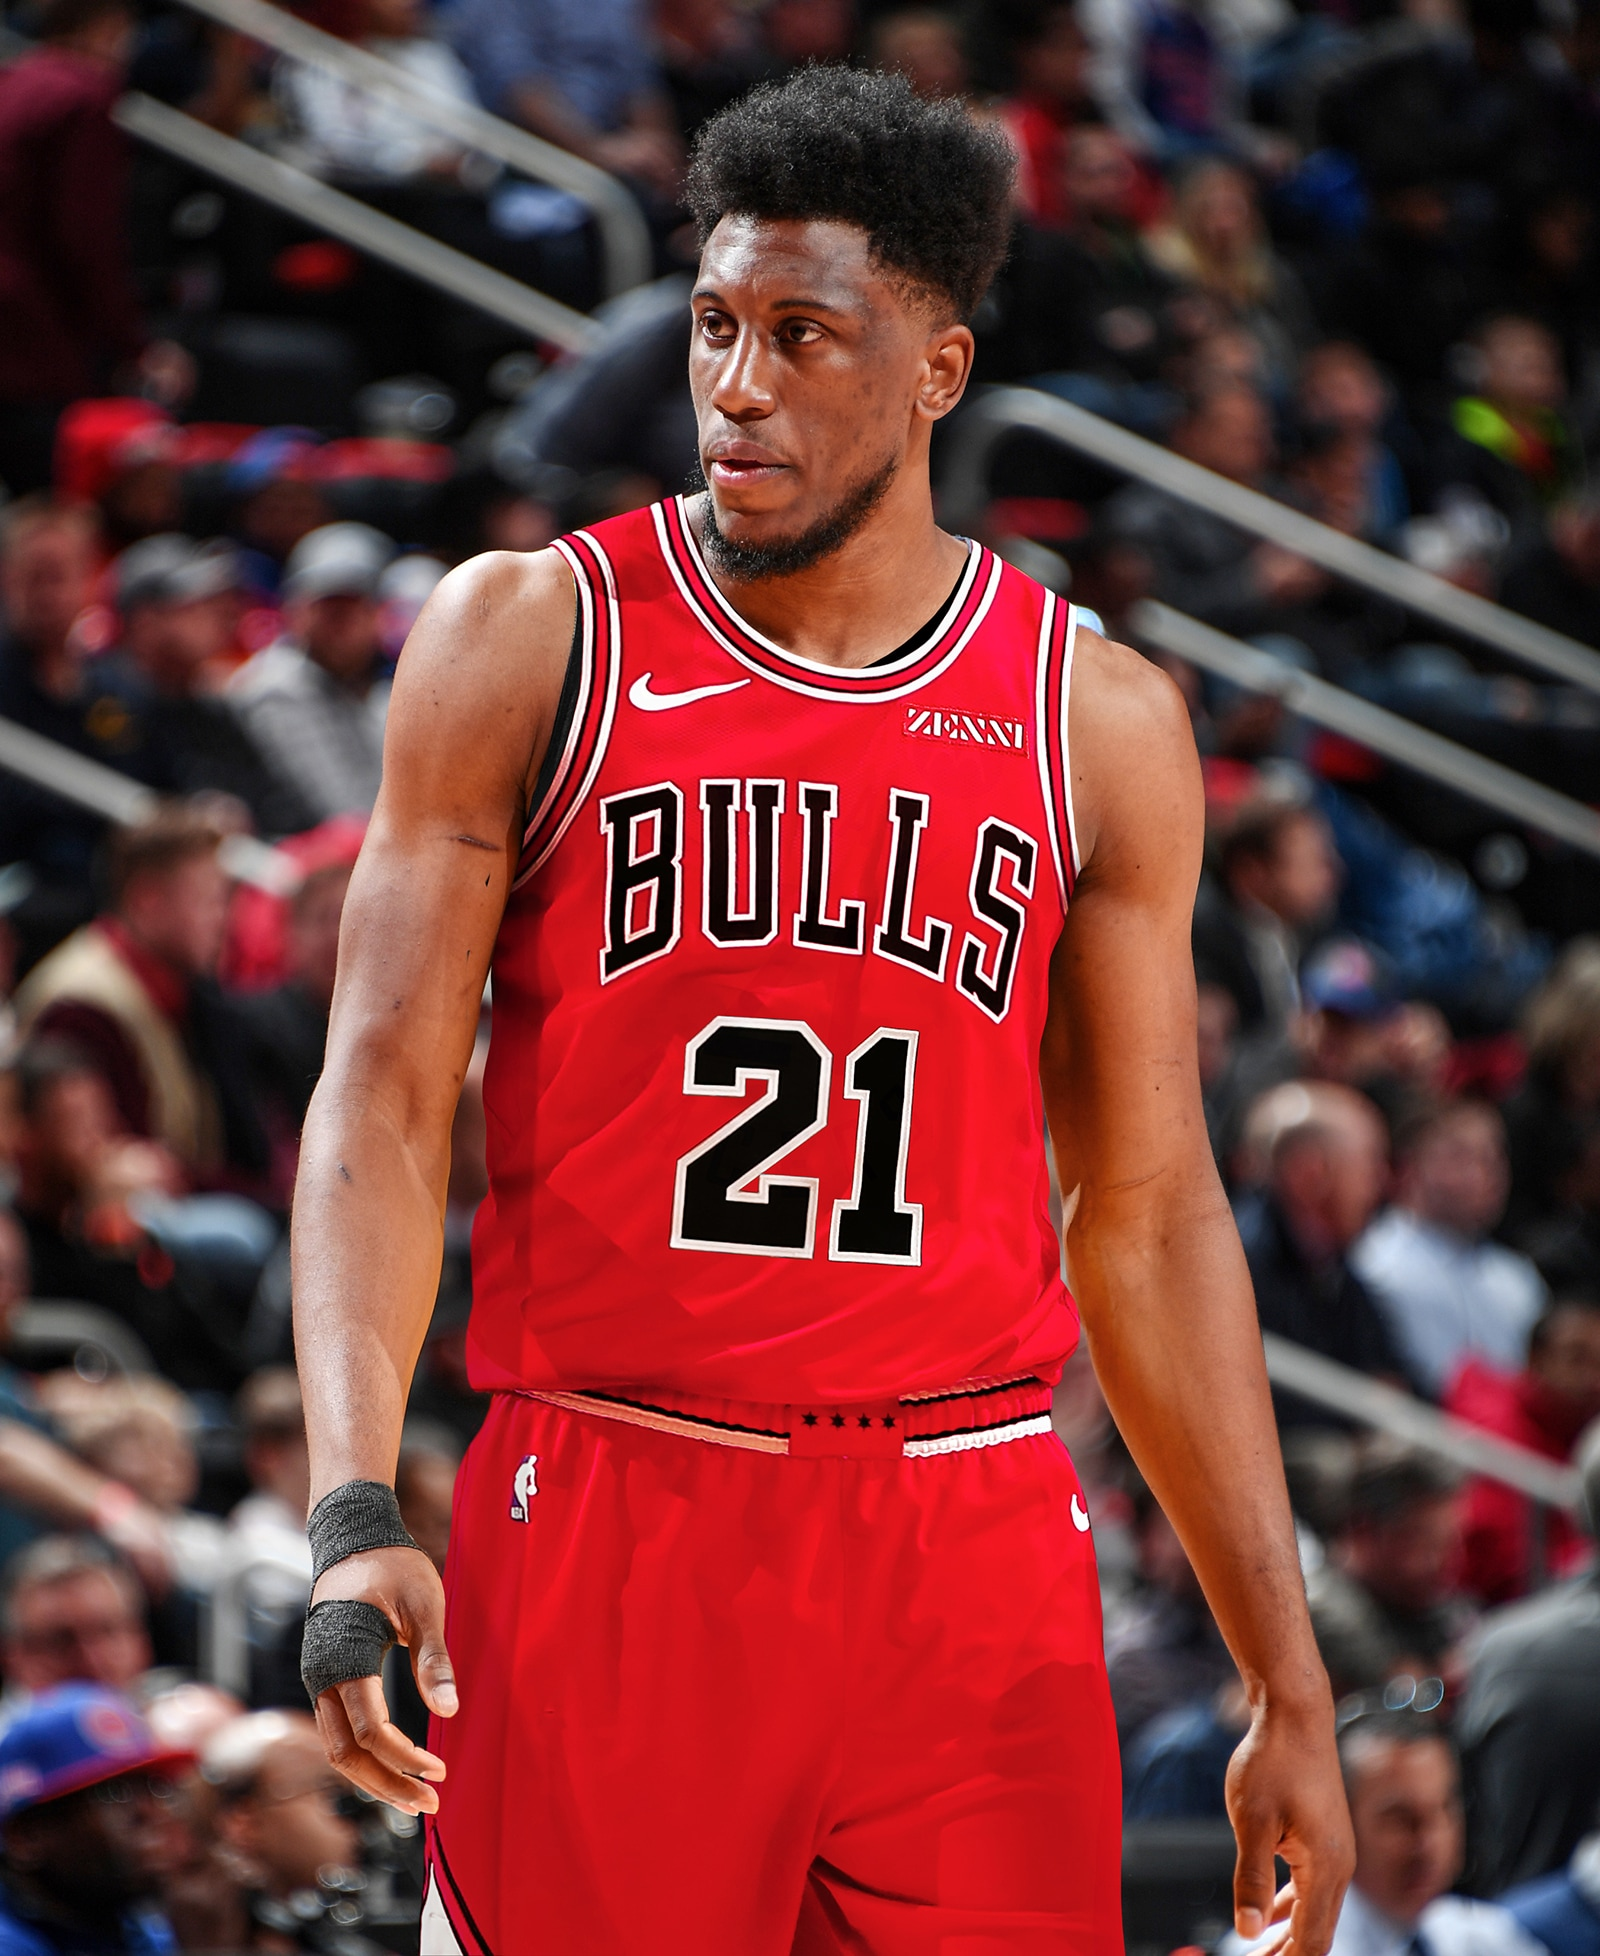 Thaddeus Young Wearing a Bulls Jersey